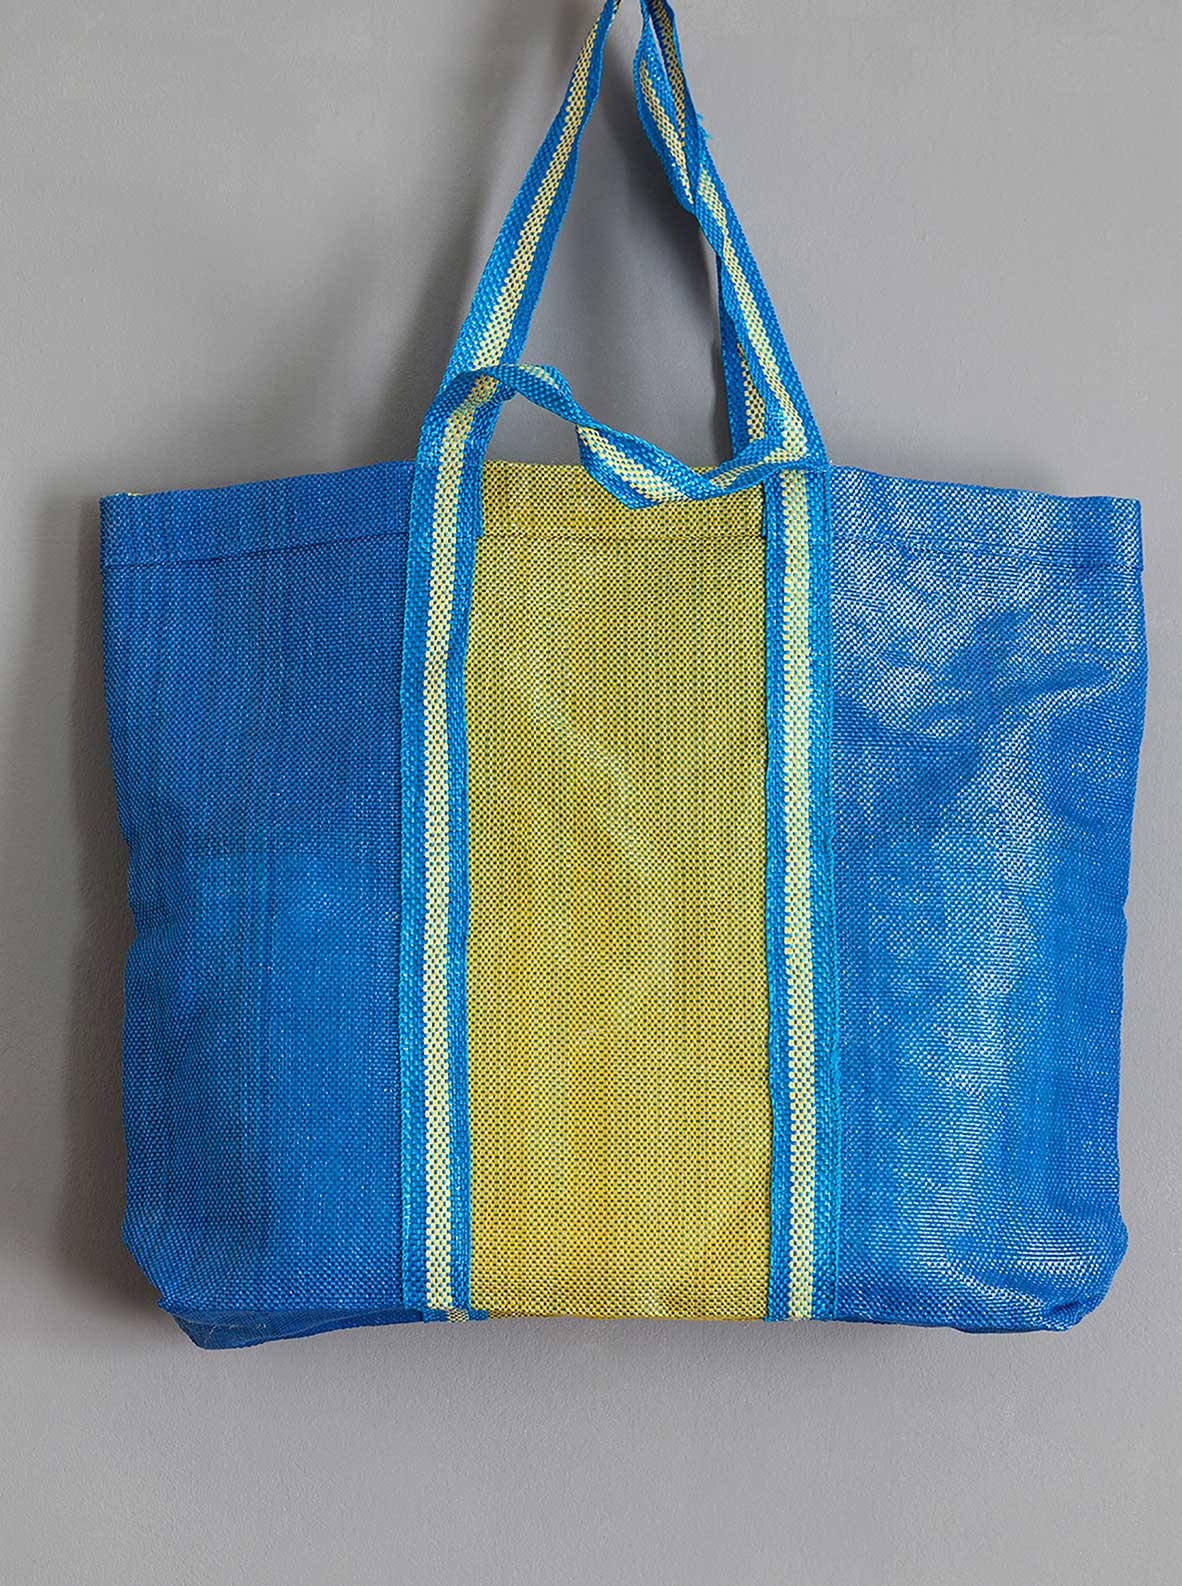 Larusi Store - Zest shopper bag